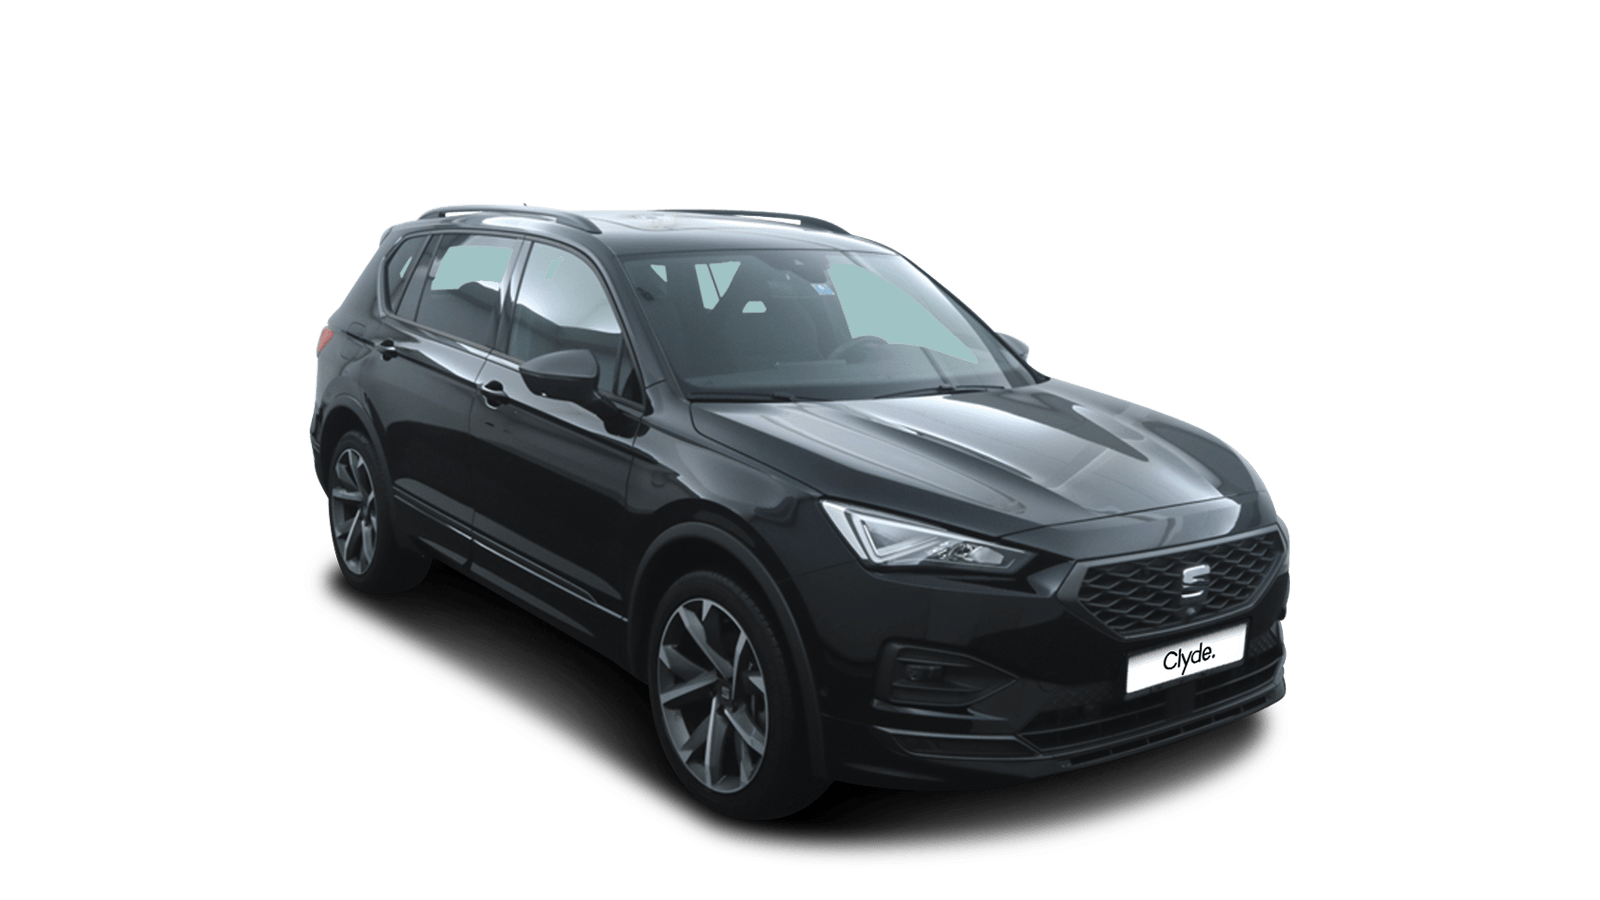 SEAT Tarraco Black front - Clyde car subscription